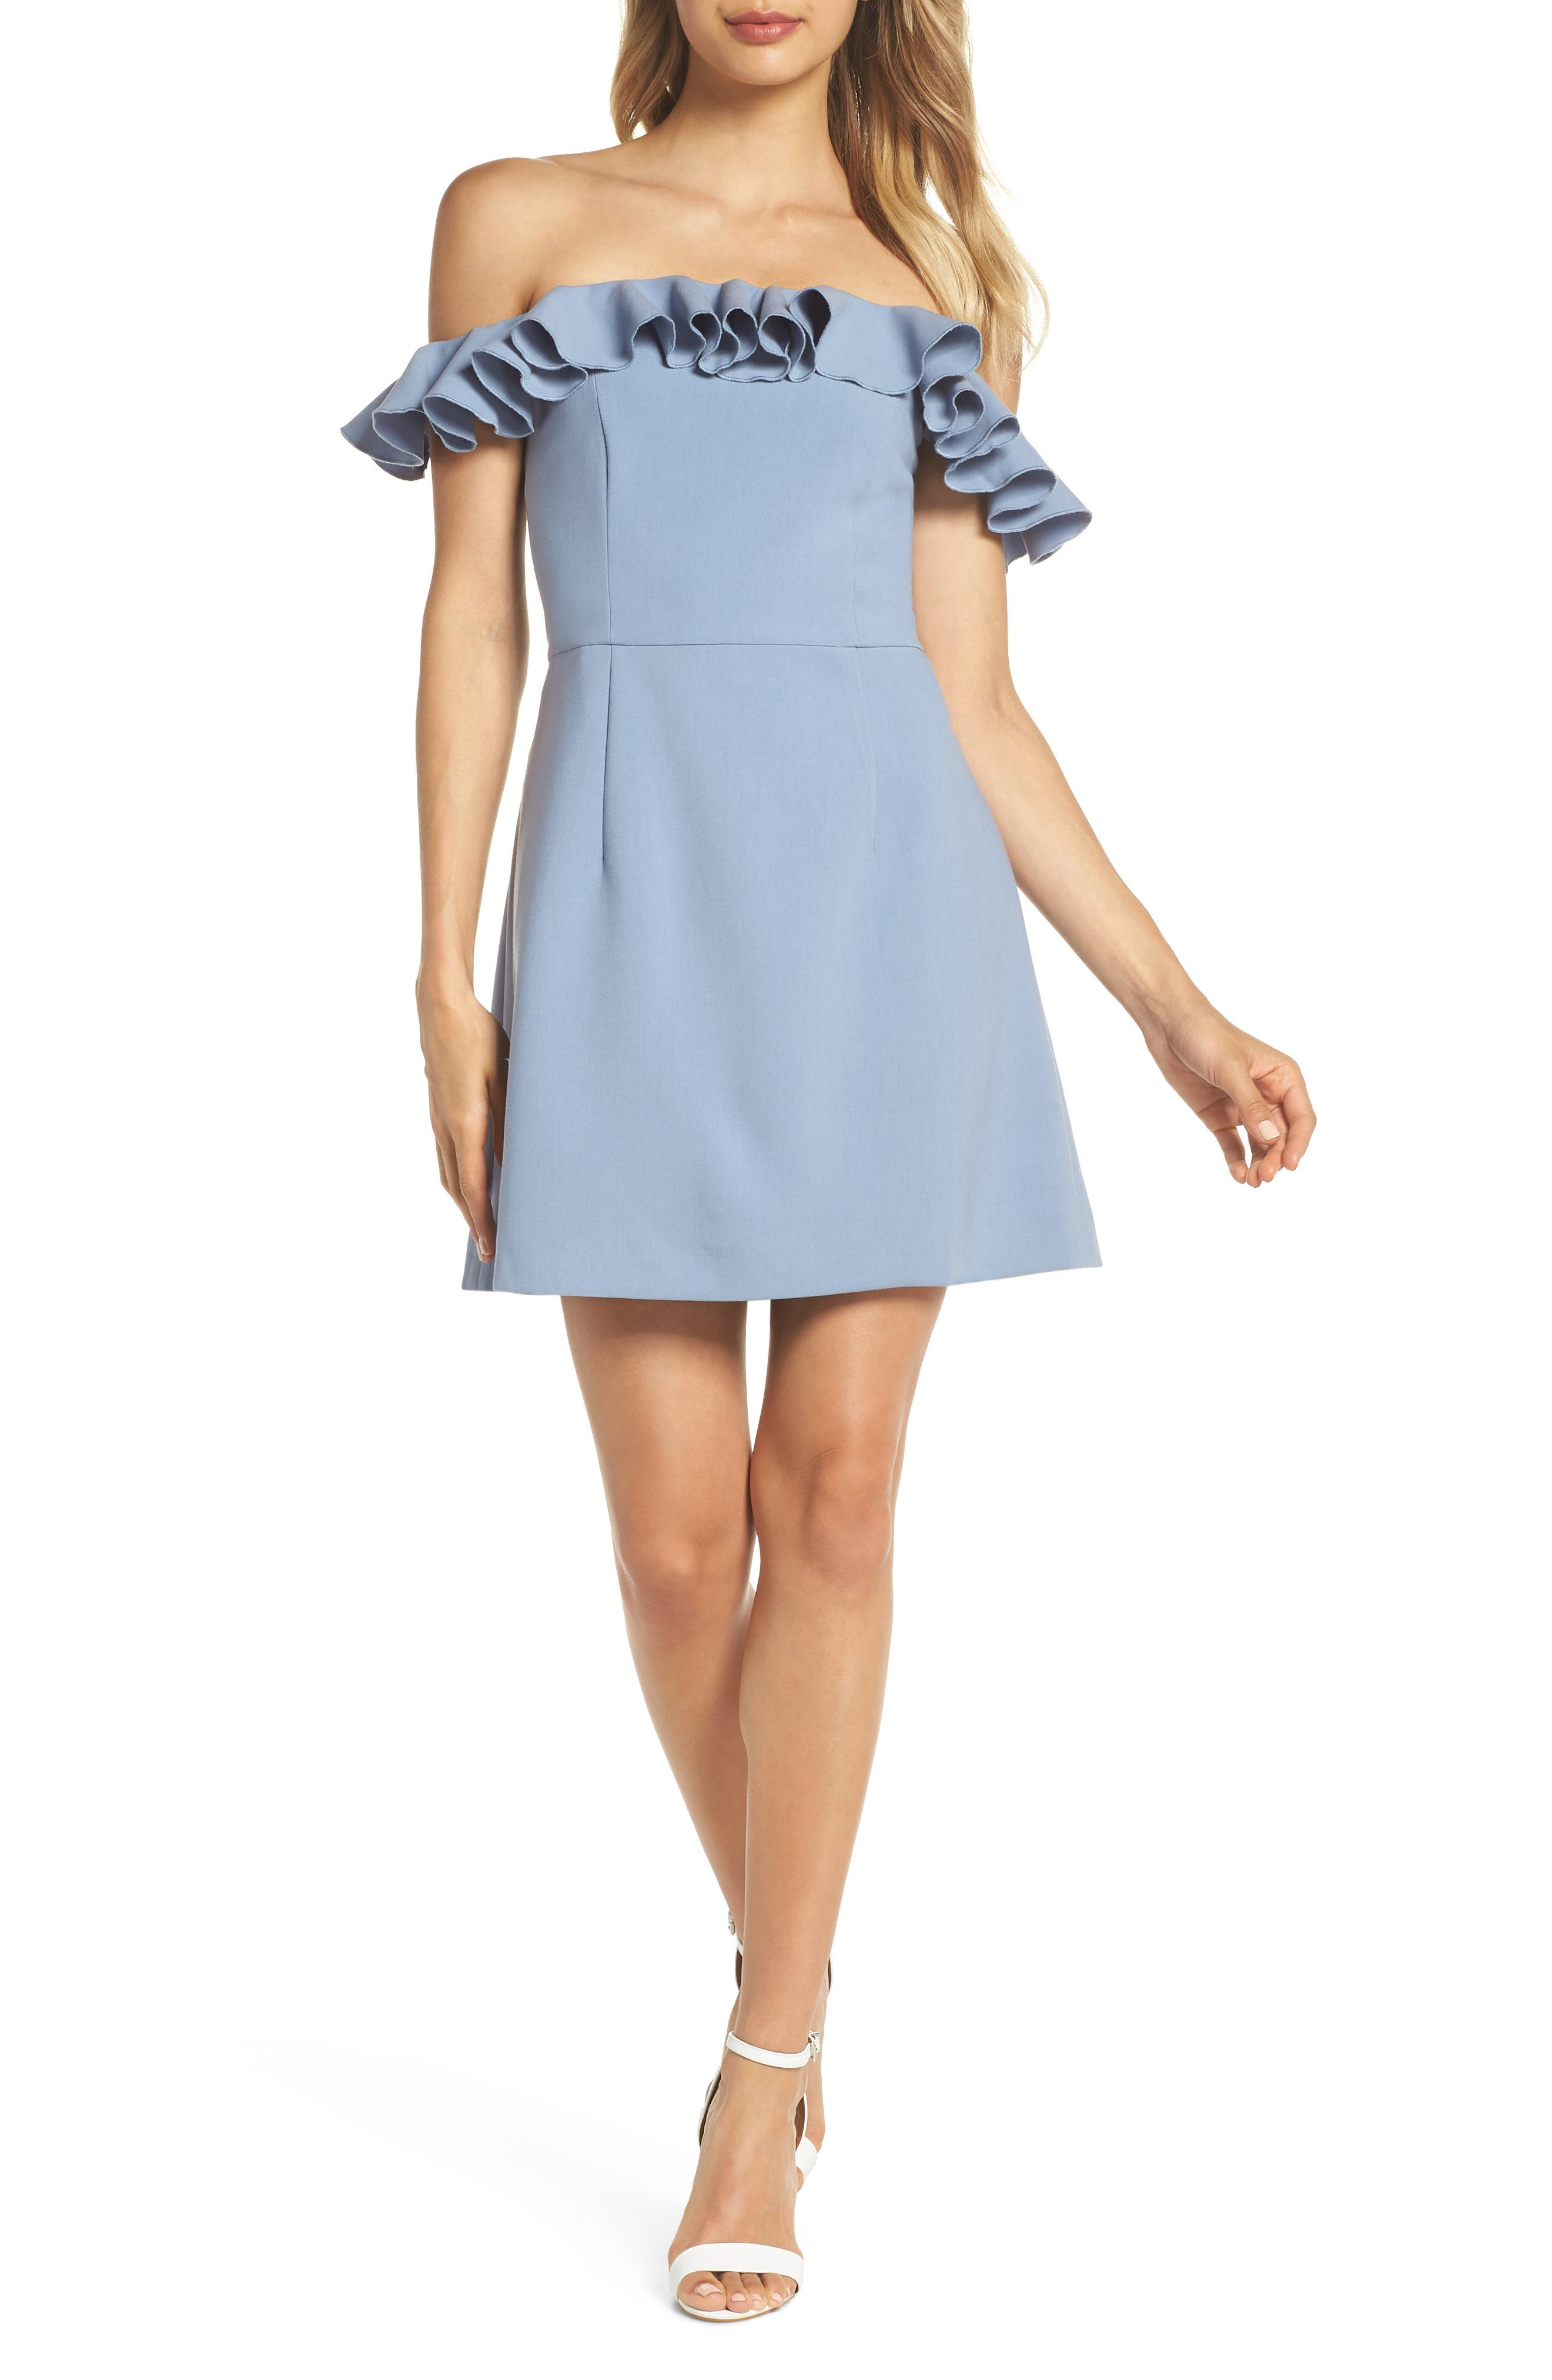 French Connection Whisper Light Off The Shoulder Ruffle Dress, Grey